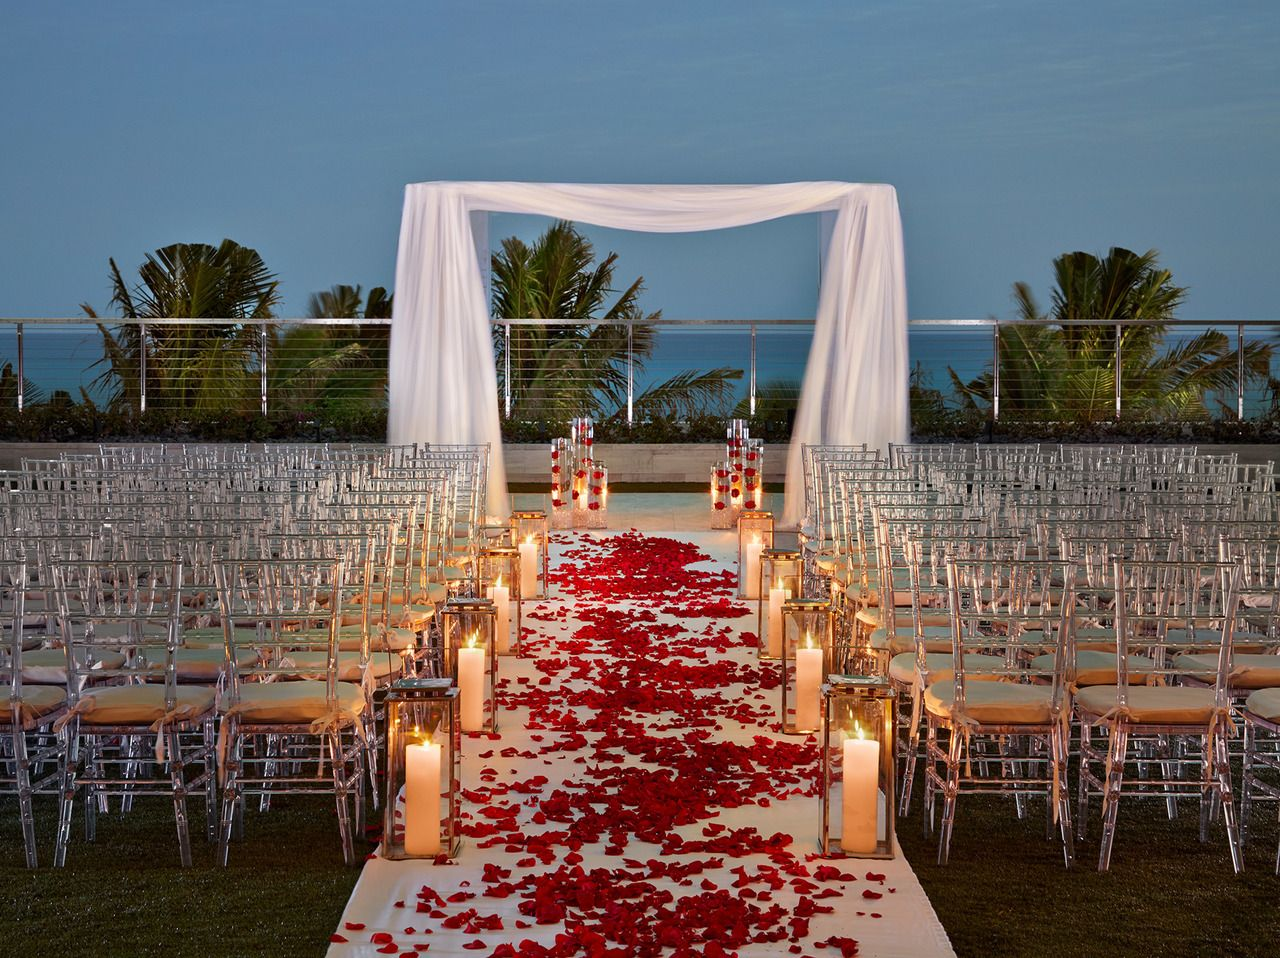 Gallery The Miami Beach What An Amazing Wedding Venue